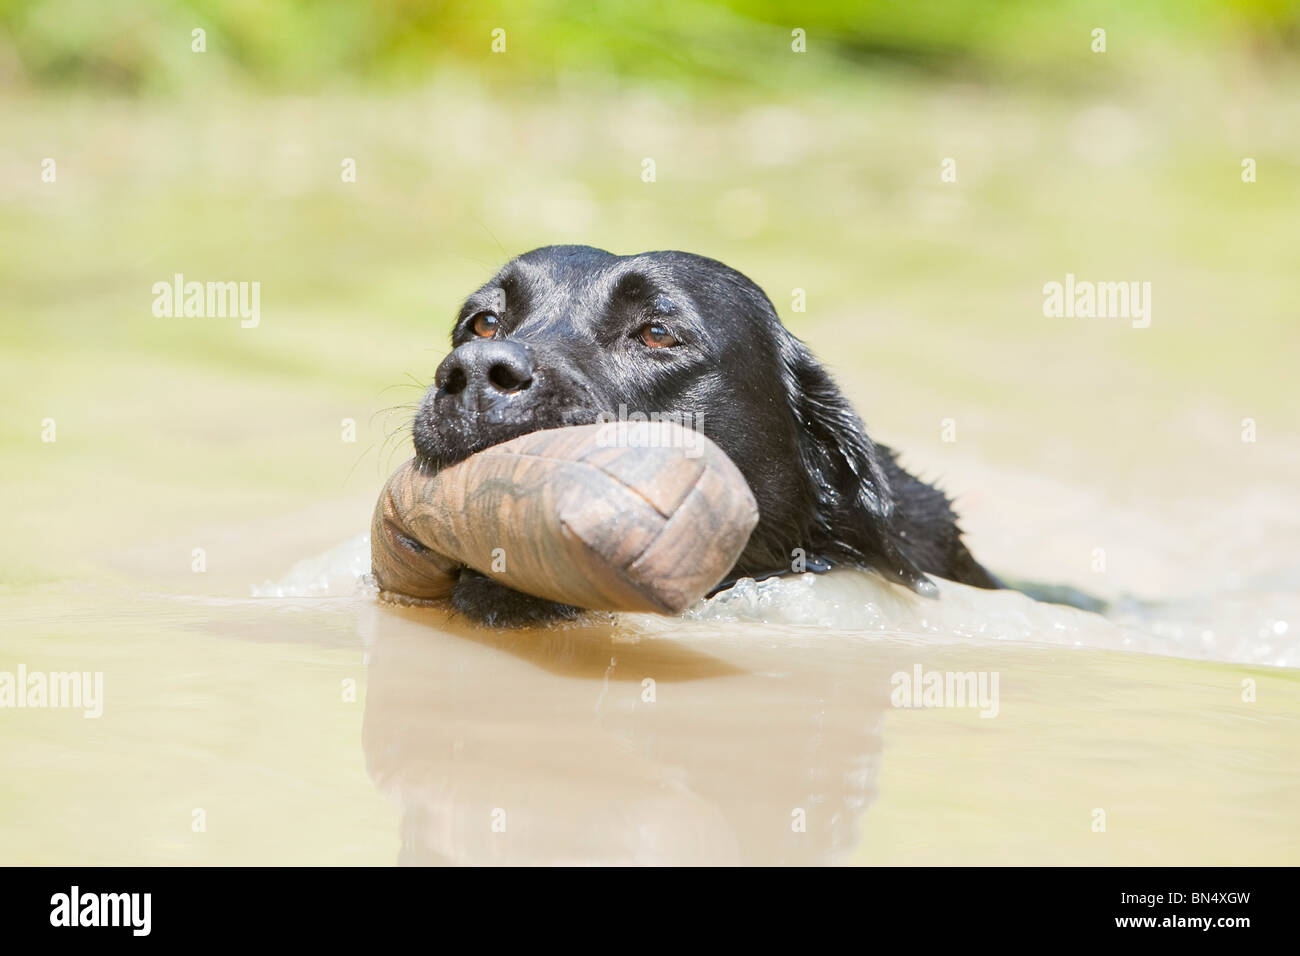 A black Labrador Retriever swimming with a training dummy in its mouth Stock Photo